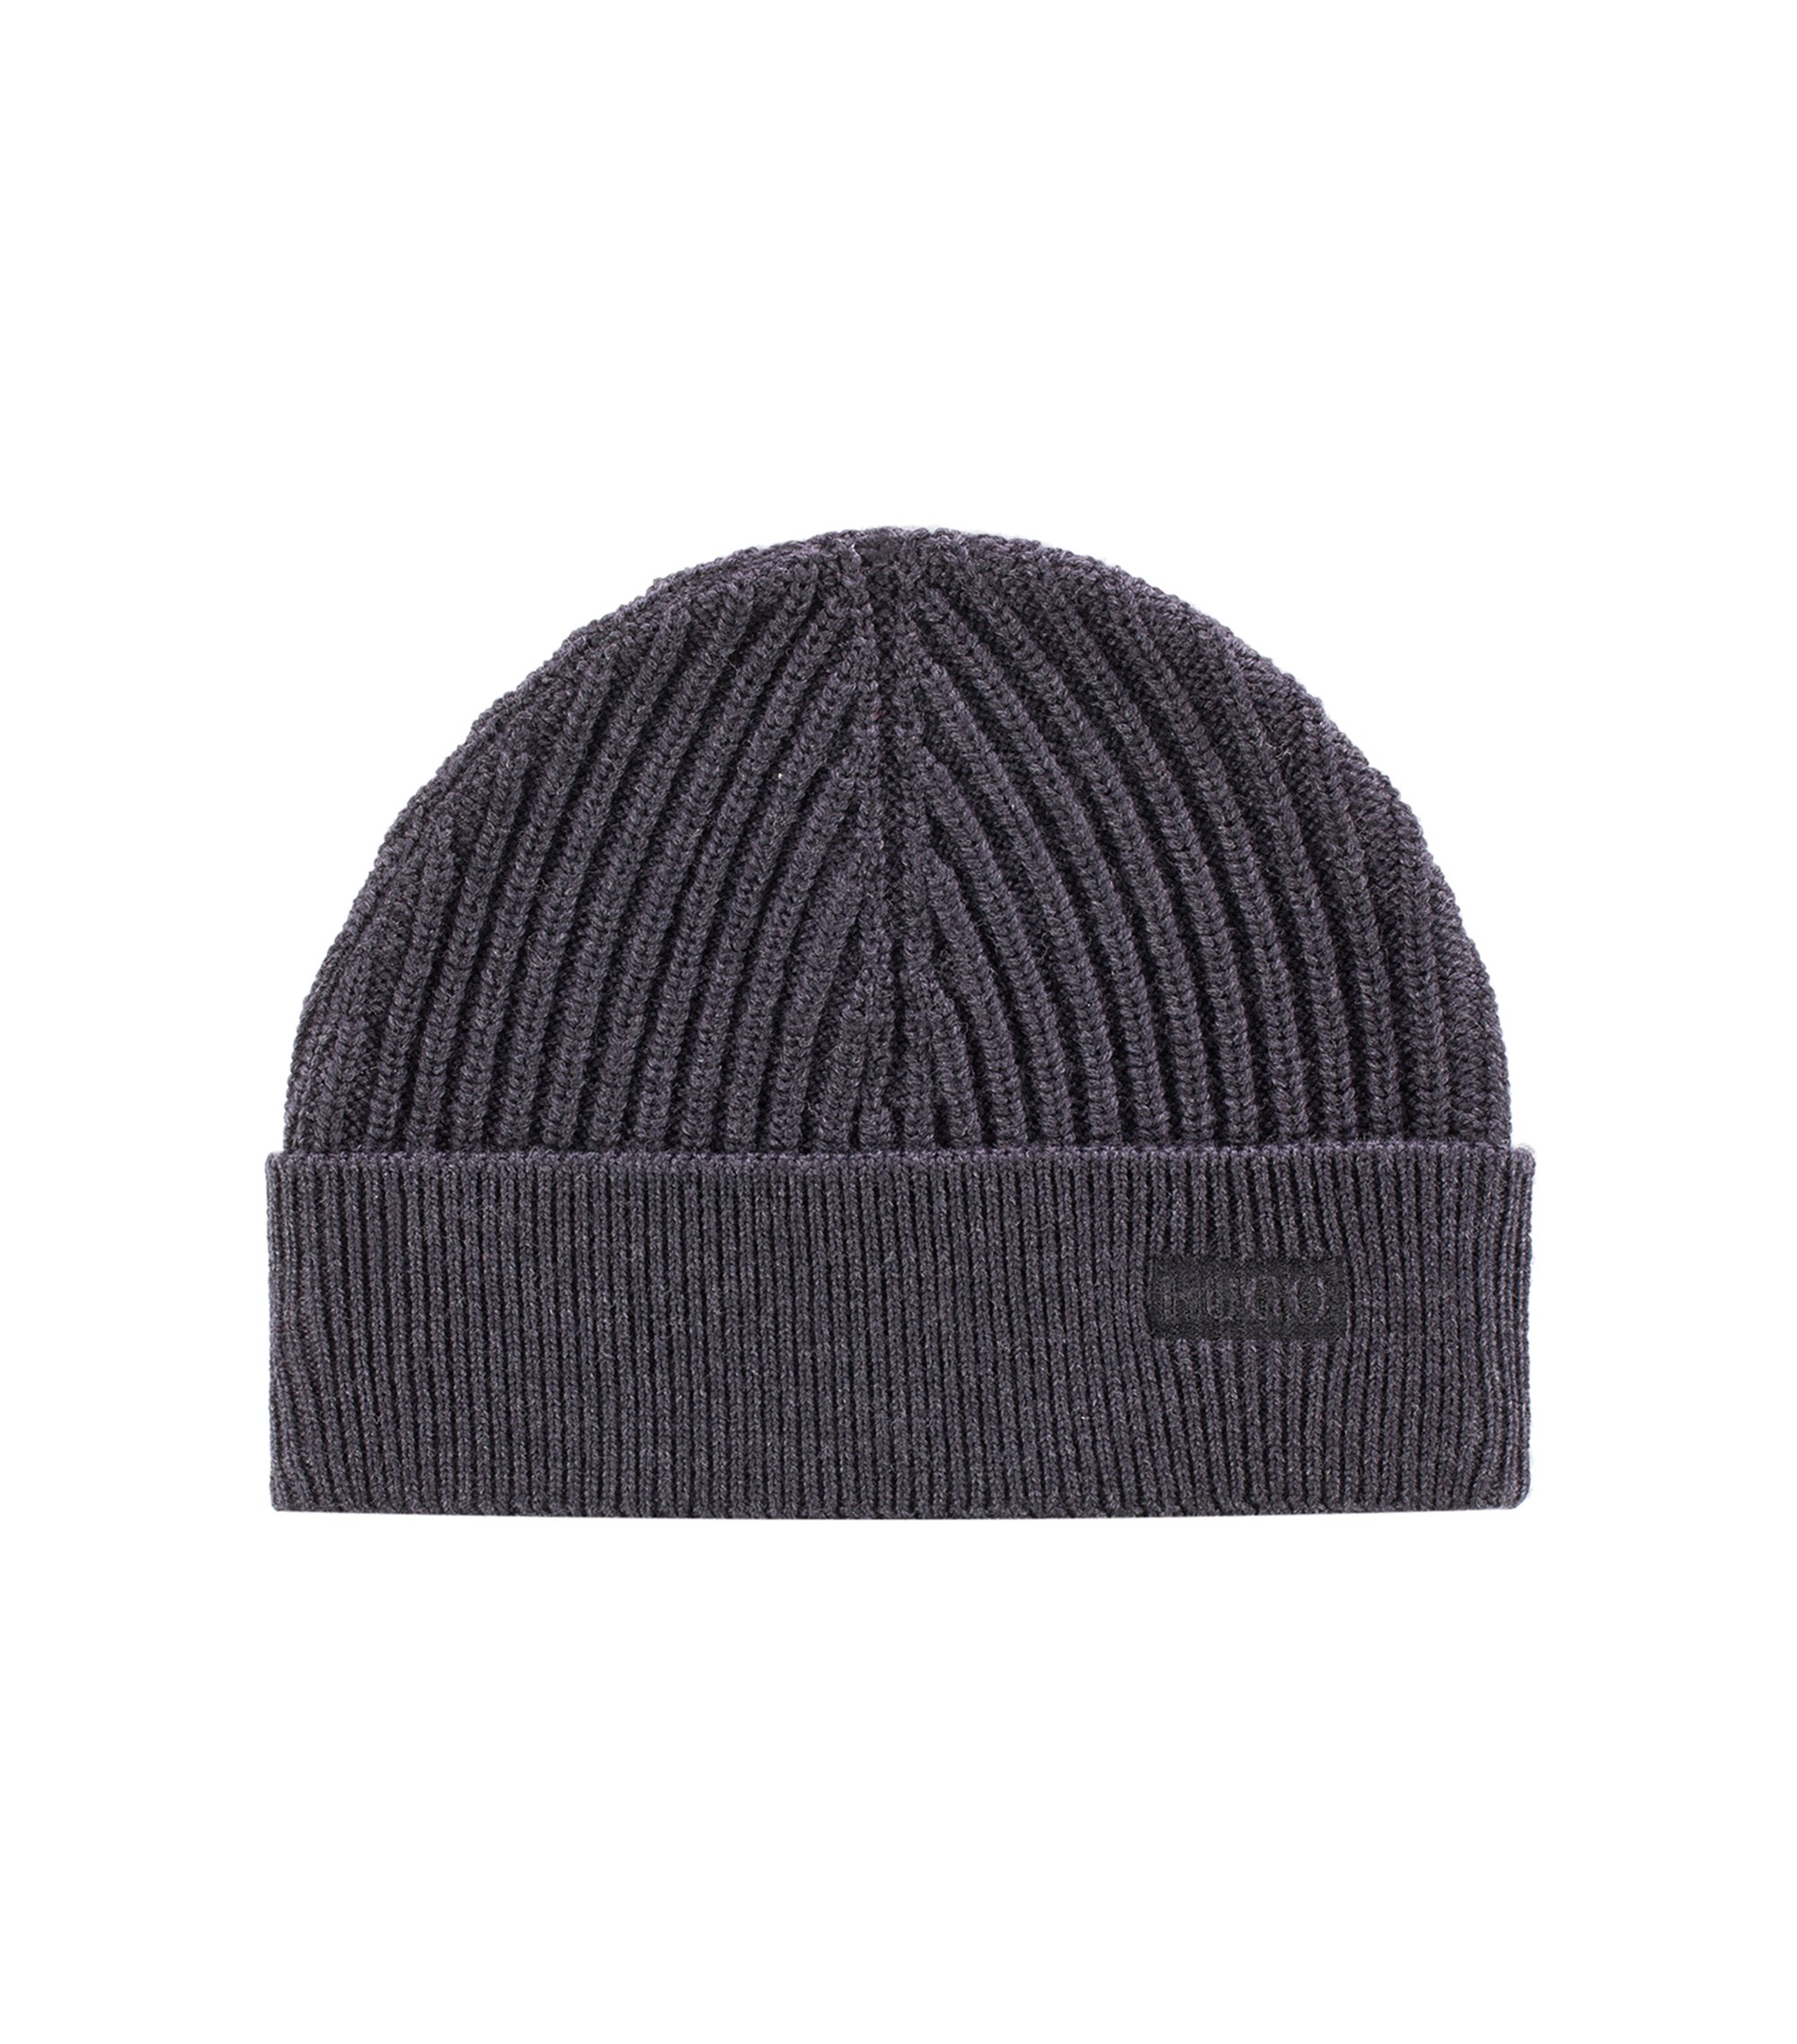 Ribbed merino-wool beanie hat with logo embroidery, Charcoal